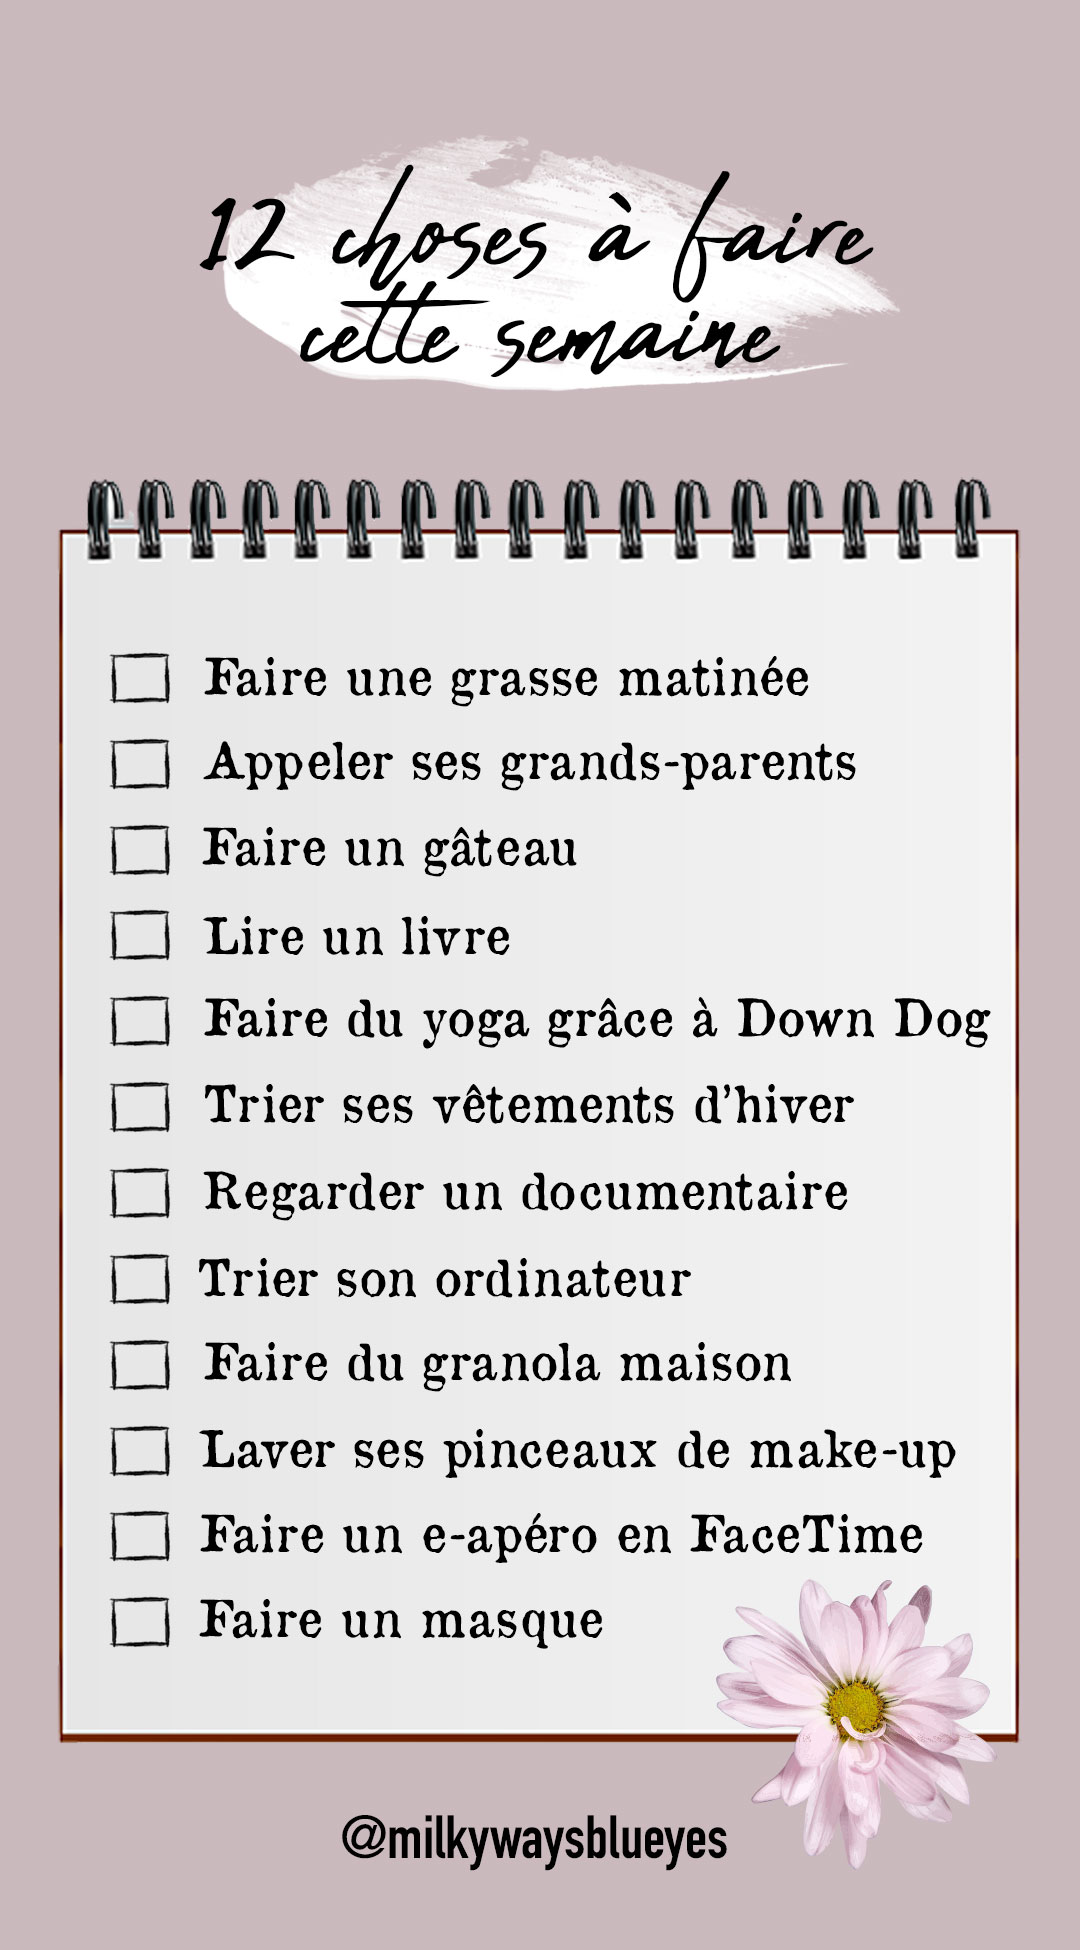 12 choses à faire confinement